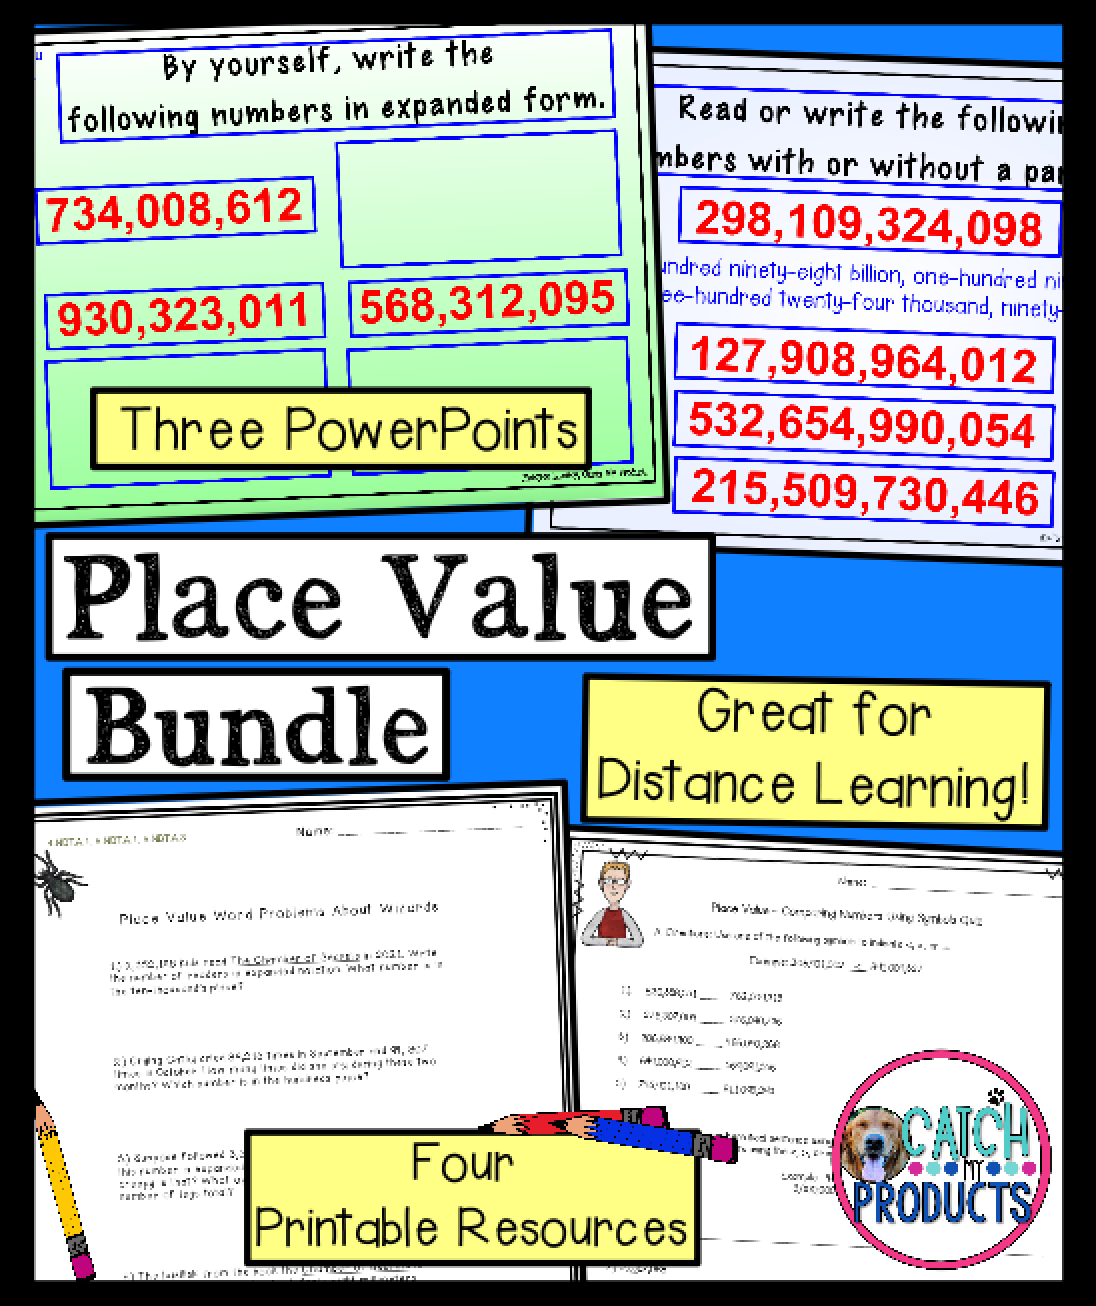 Place Value Lesson Plans 4th Grade In